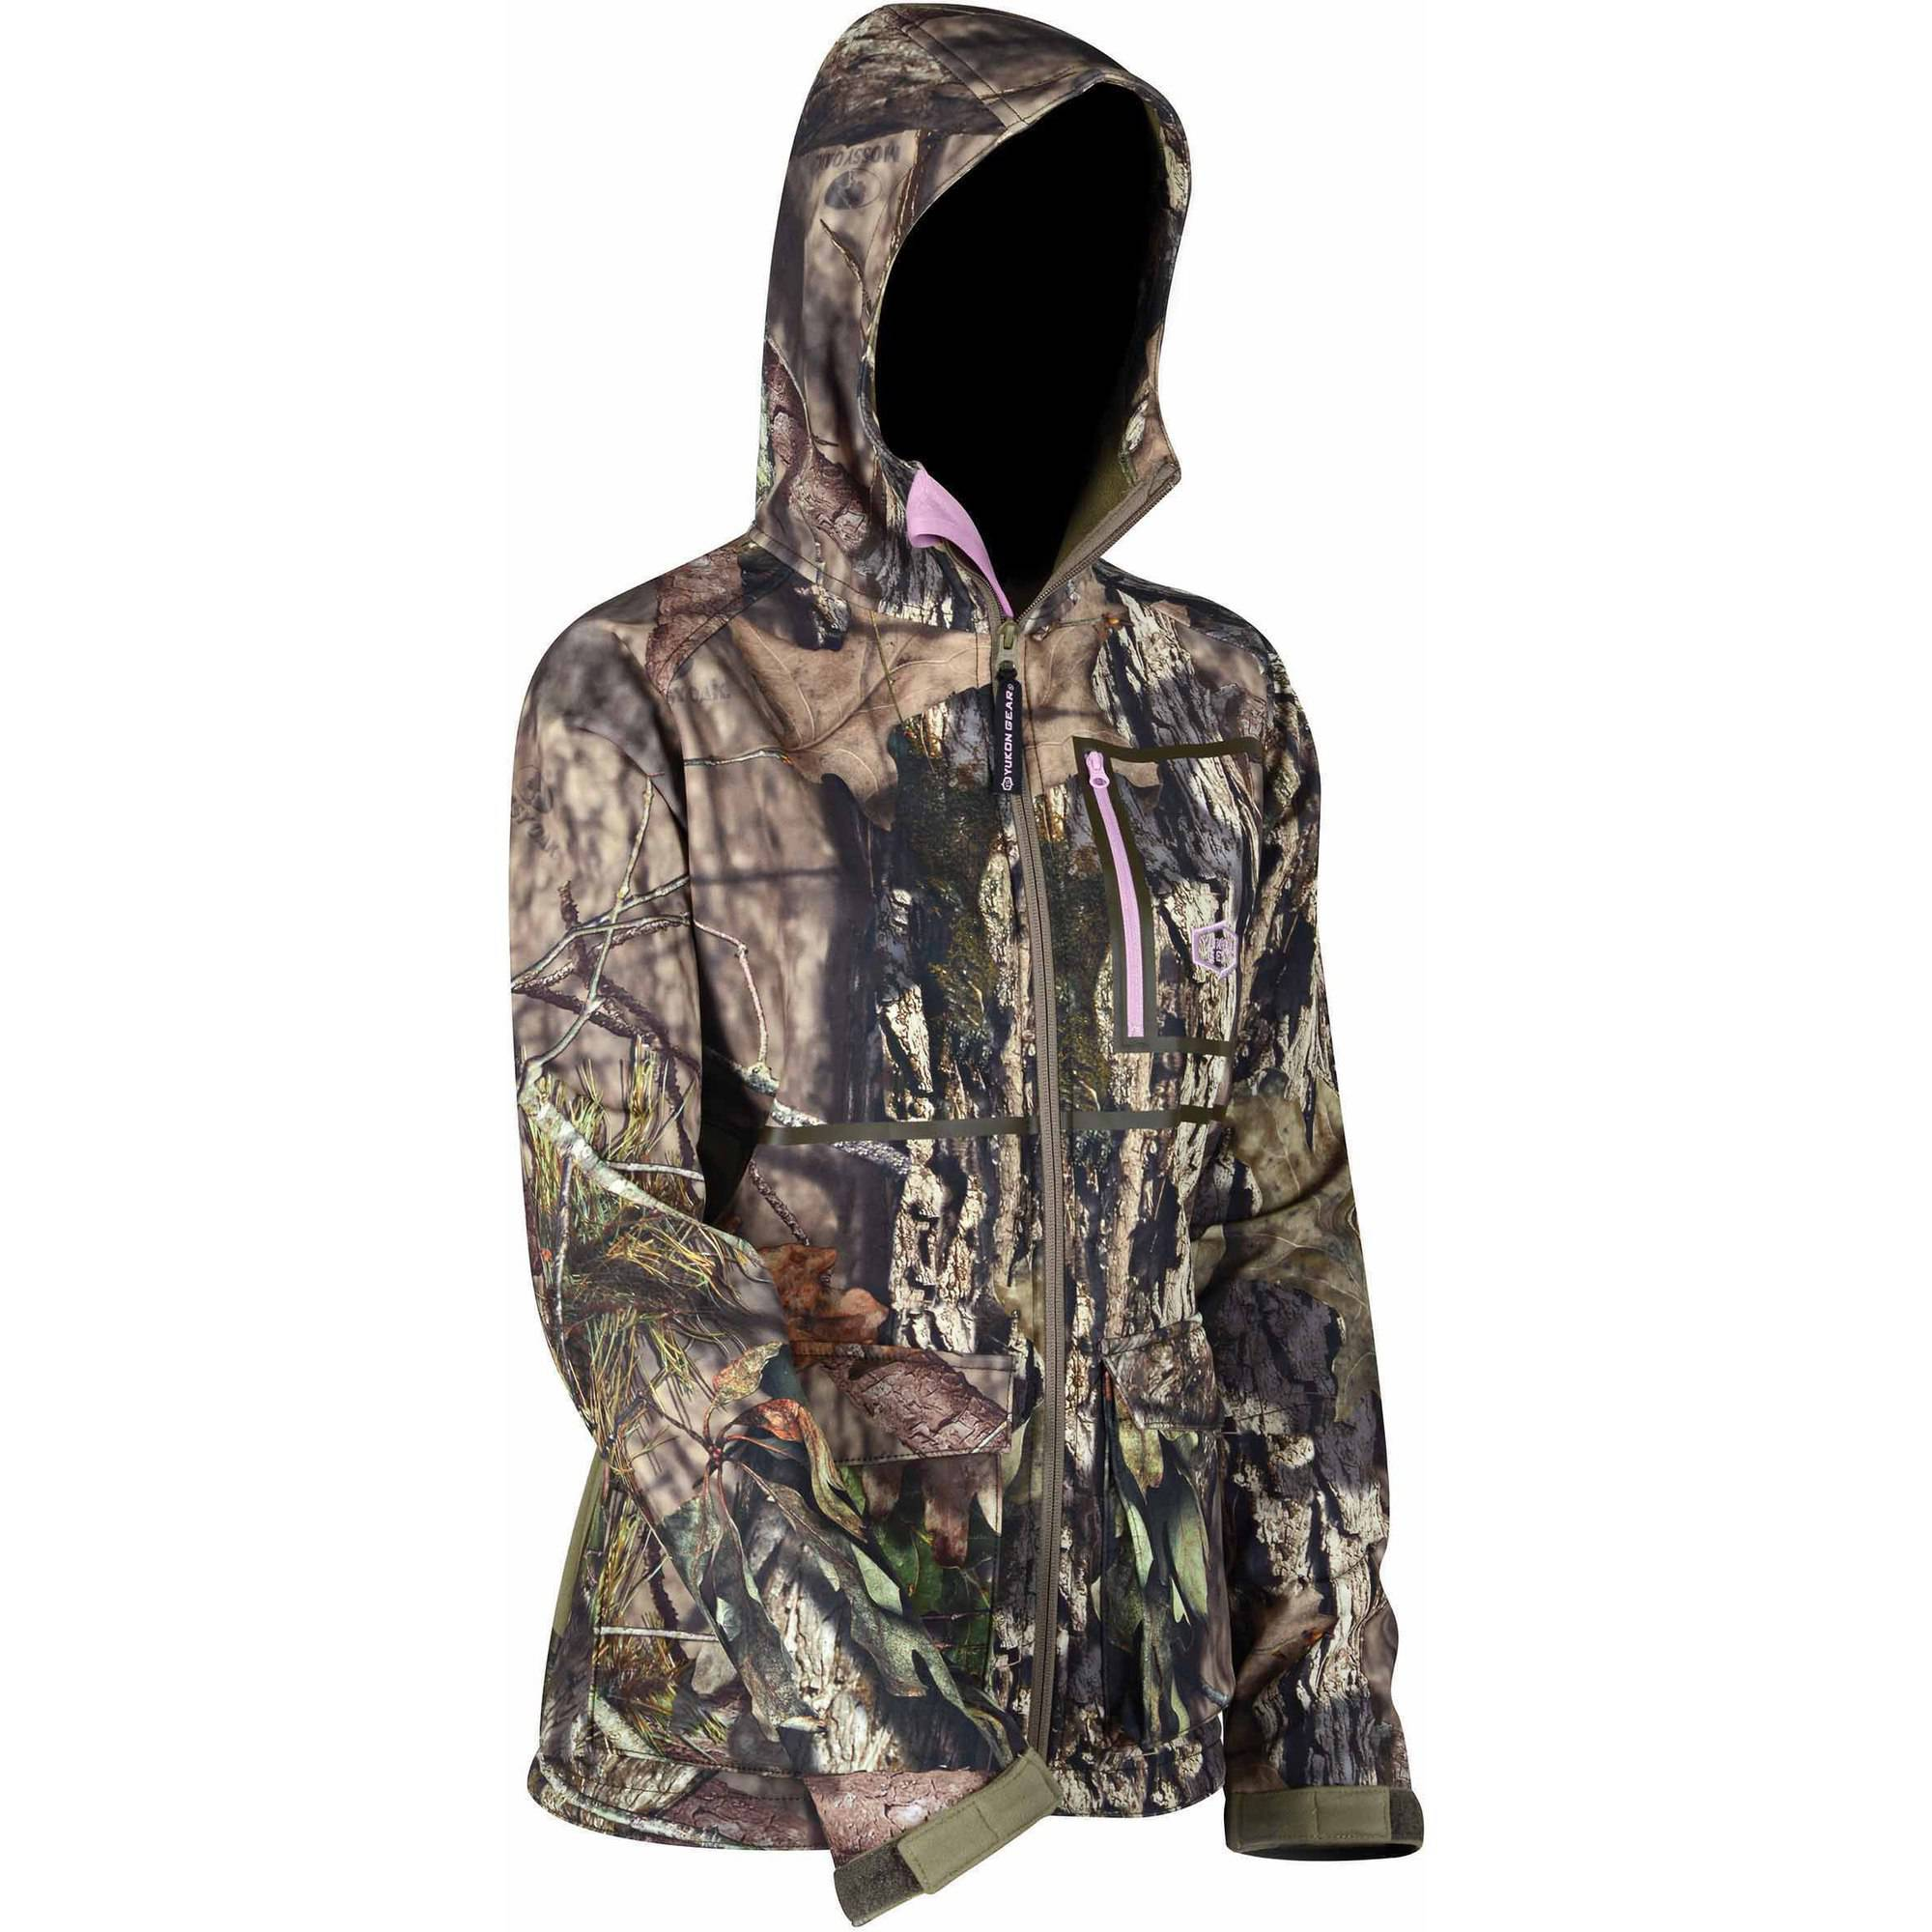 Yukon Gear Waylay Women's Softshell Outerlayer Jacket, Mossy Oak Country